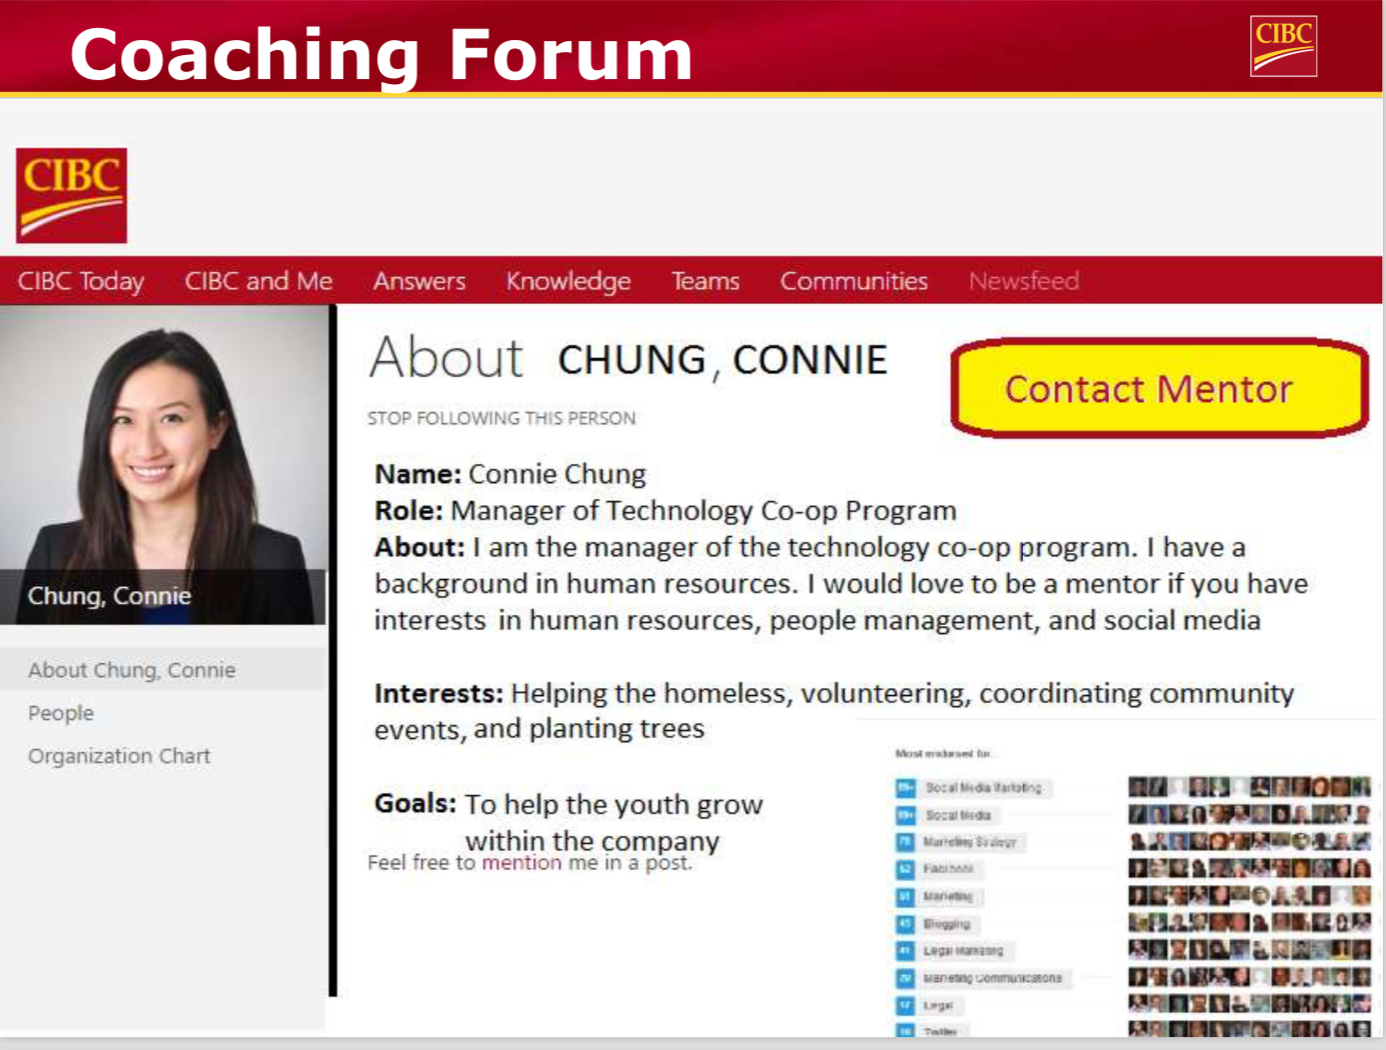 Process - After receiving the necessary approvals and completing a series of HR training modules, successful mentors will be accessible for interns to contact via the CIBC myFuture portal found on CIBC's Employee Landing Page (CIBC Today).From there, mentors and pupils will arrange to meet in person to identify and work towards a path that will continue their career at CIBC.